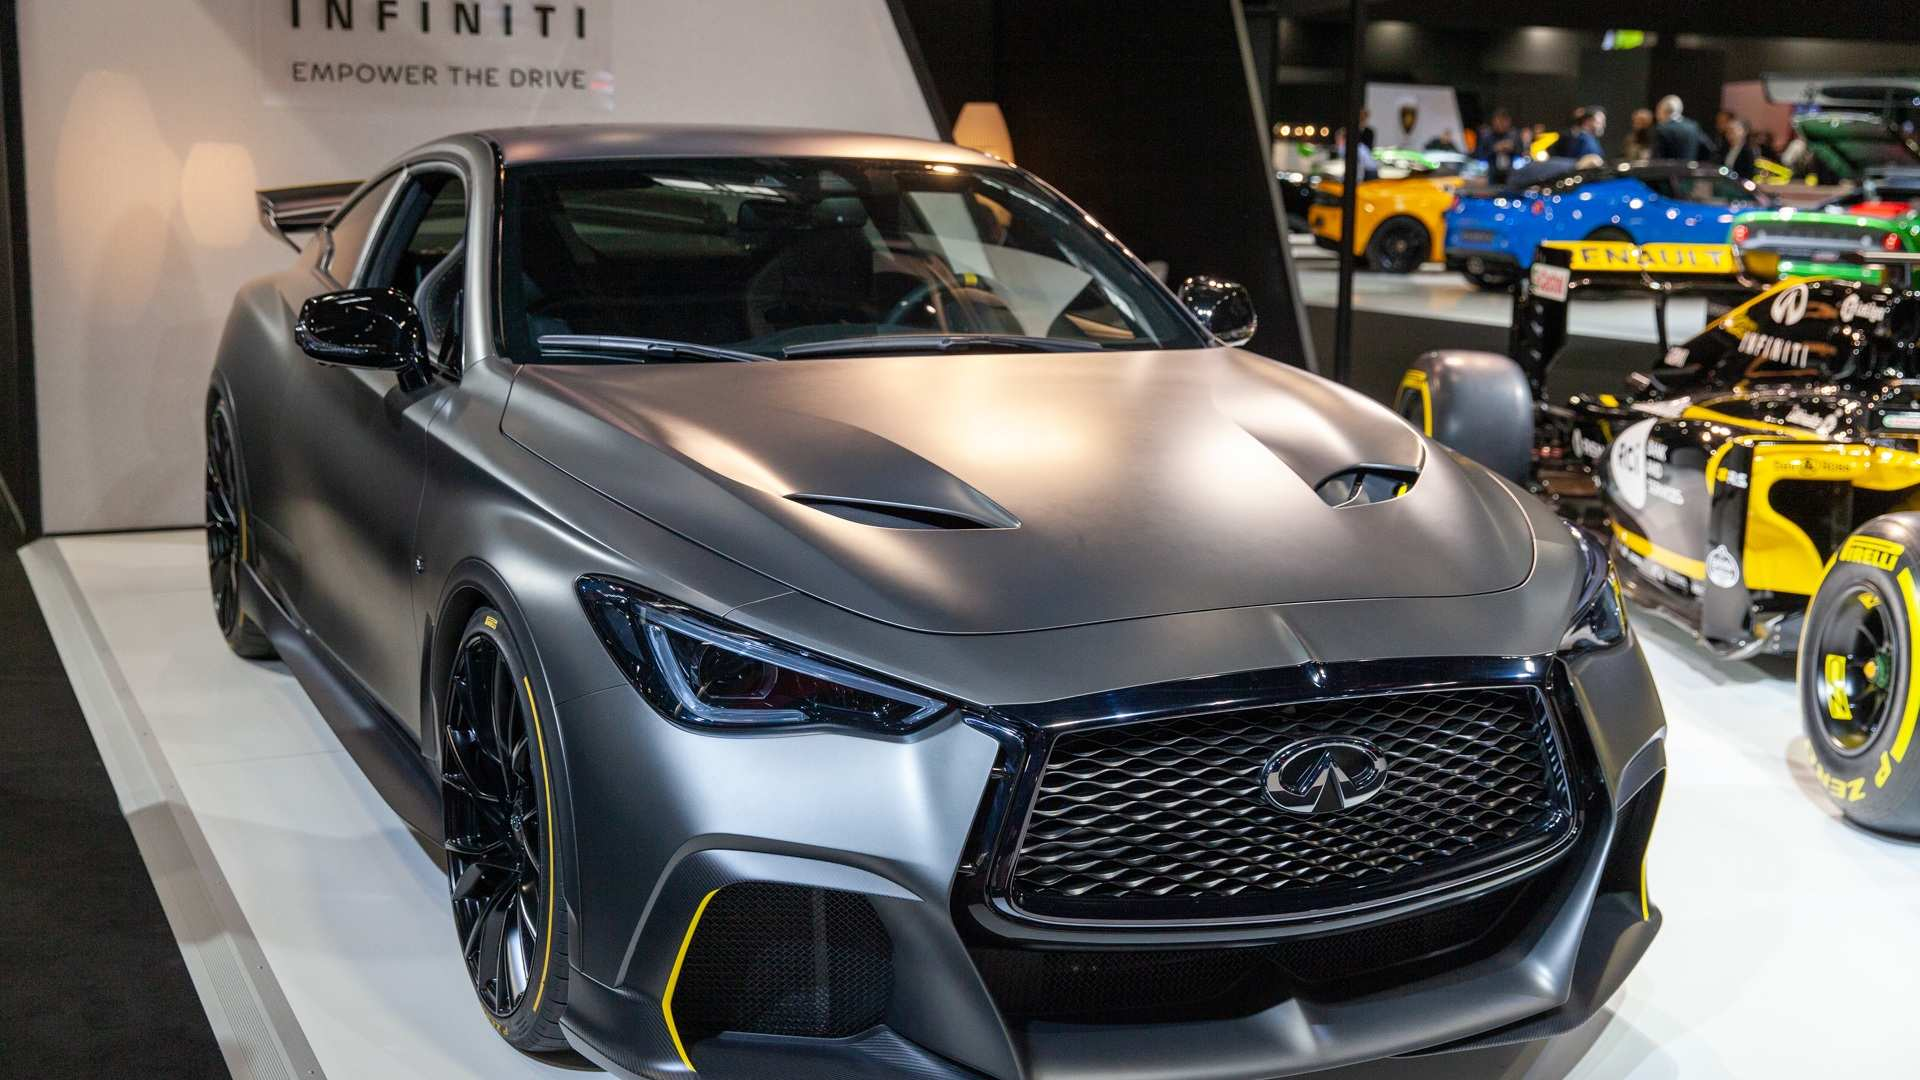 81 Concept of 2020 Infiniti Q60 Price First Drive by 2020 Infiniti Q60 Price